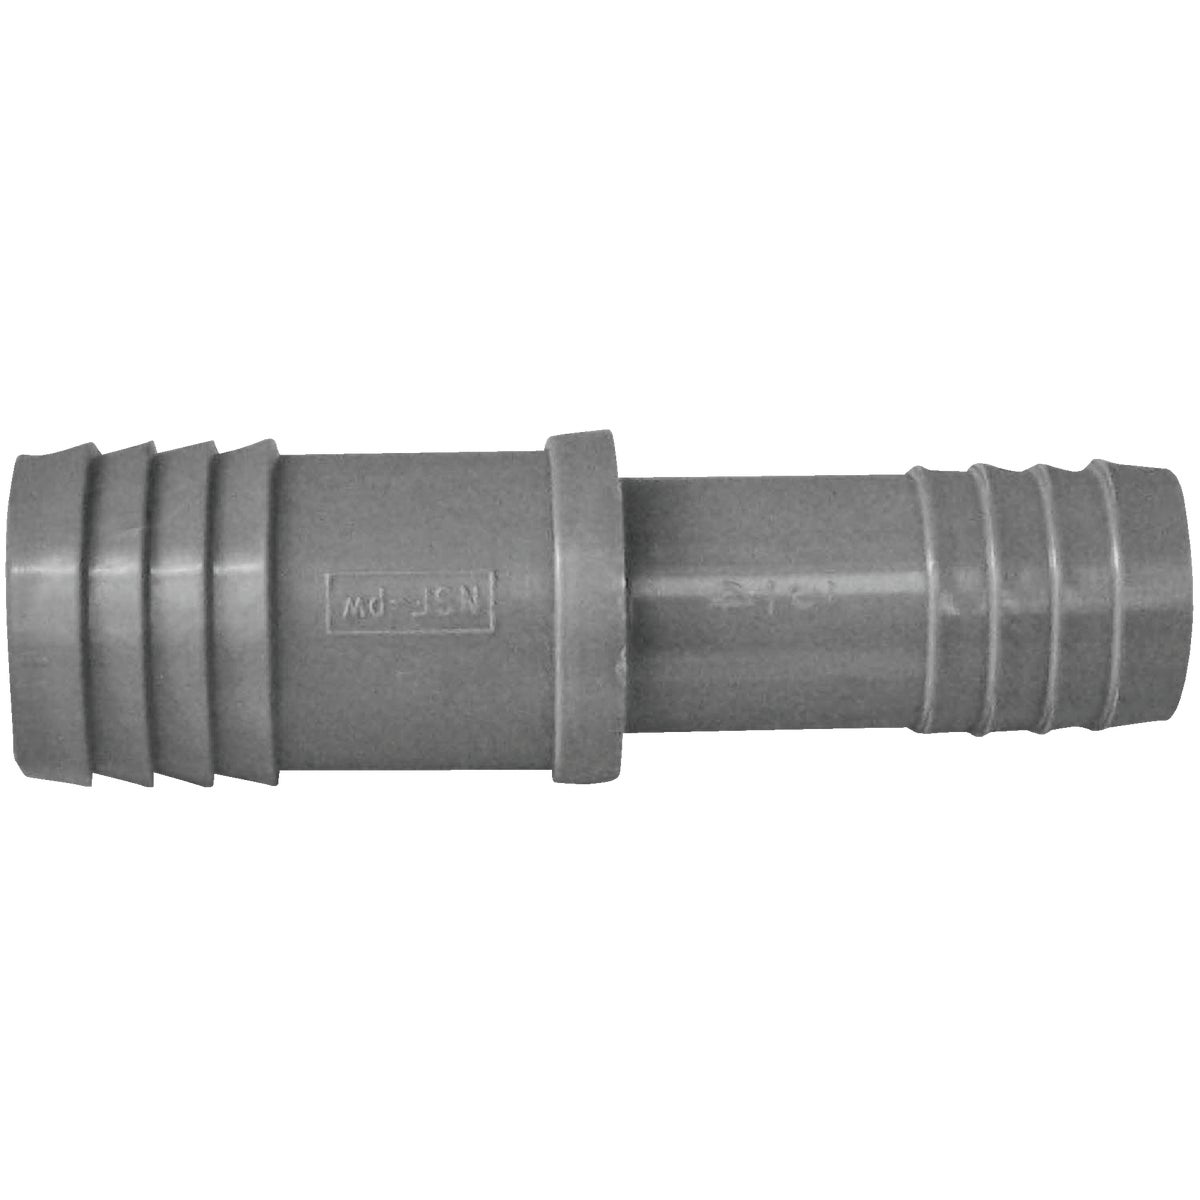 1X3/4 POLY INS COUPLING - 350117 by Genova Inc